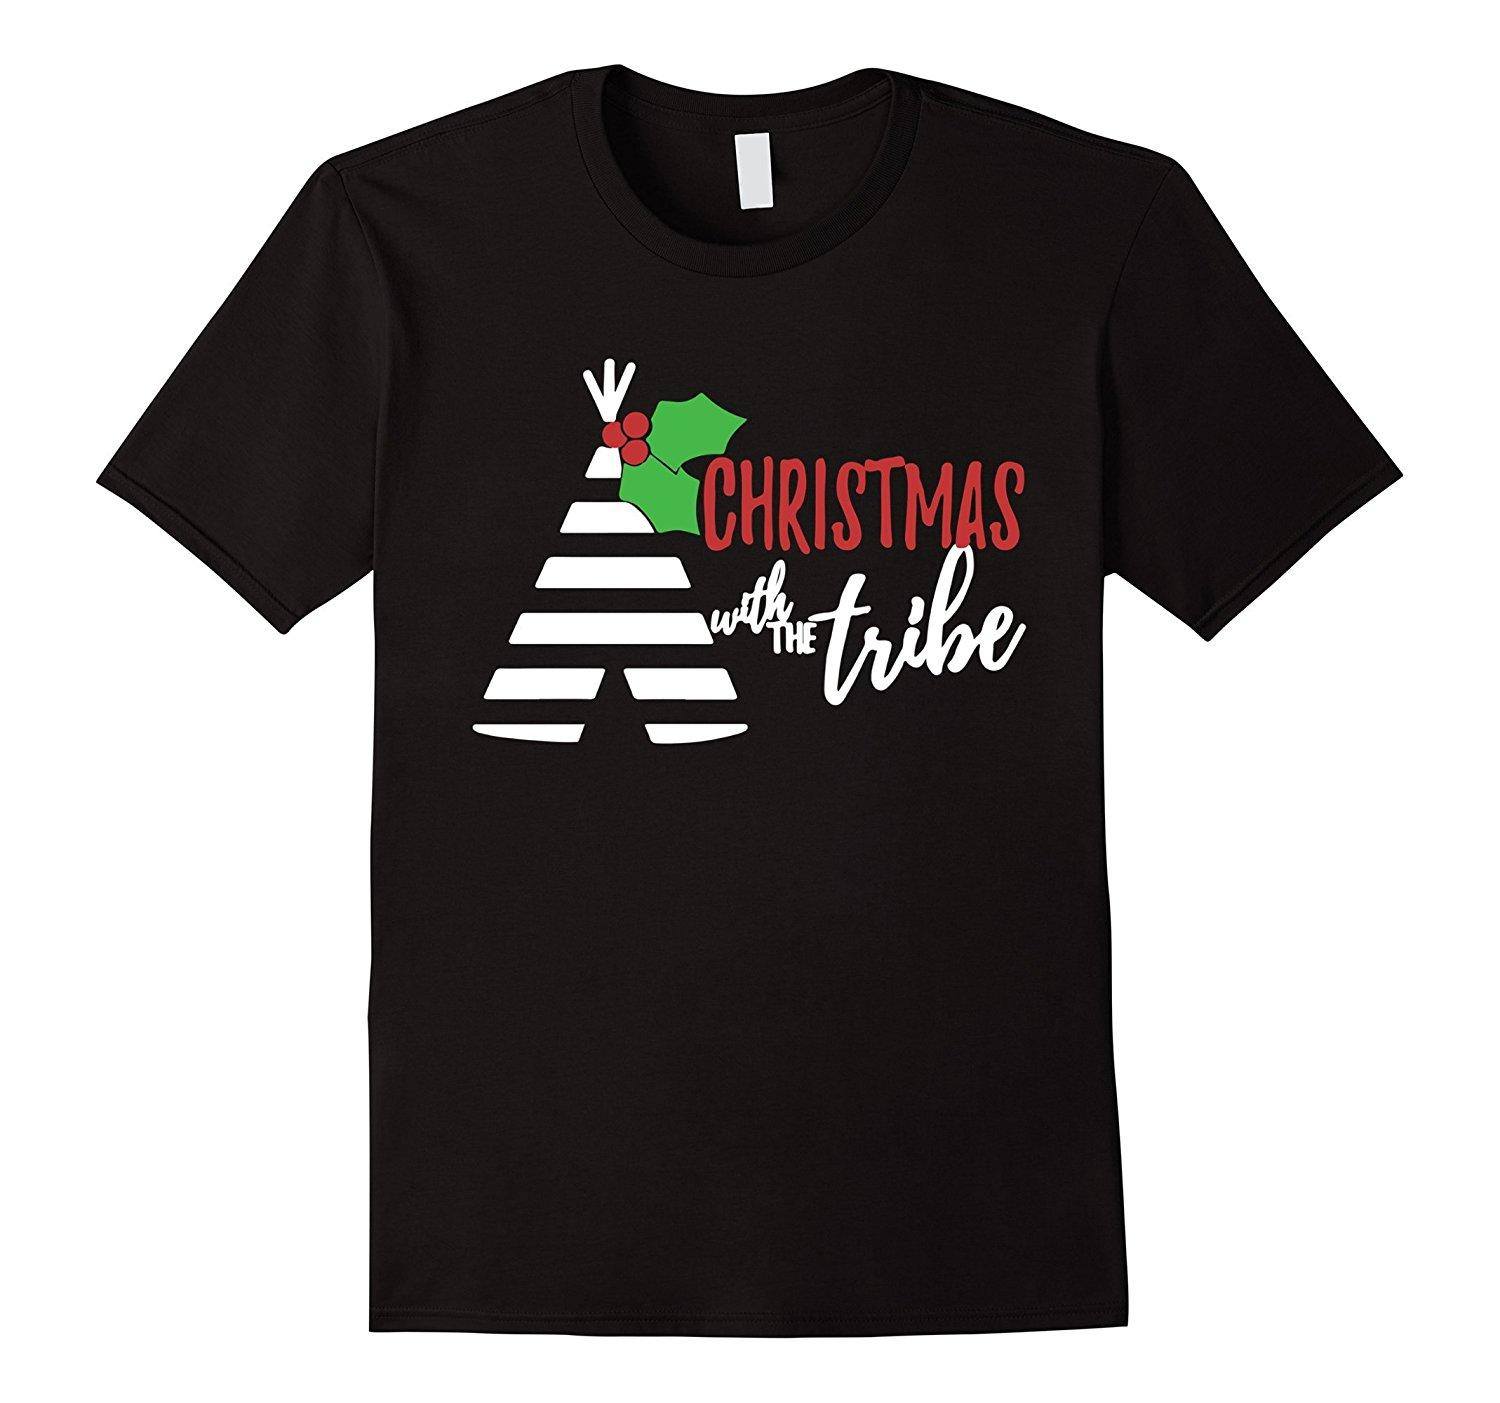 Family Christmas Shirts.Matching Family Christmas Shirts Christmas Tribe T Shirt Men Casual Short Sleeve T Shirts Wholesale Discount Colours High Quality 100